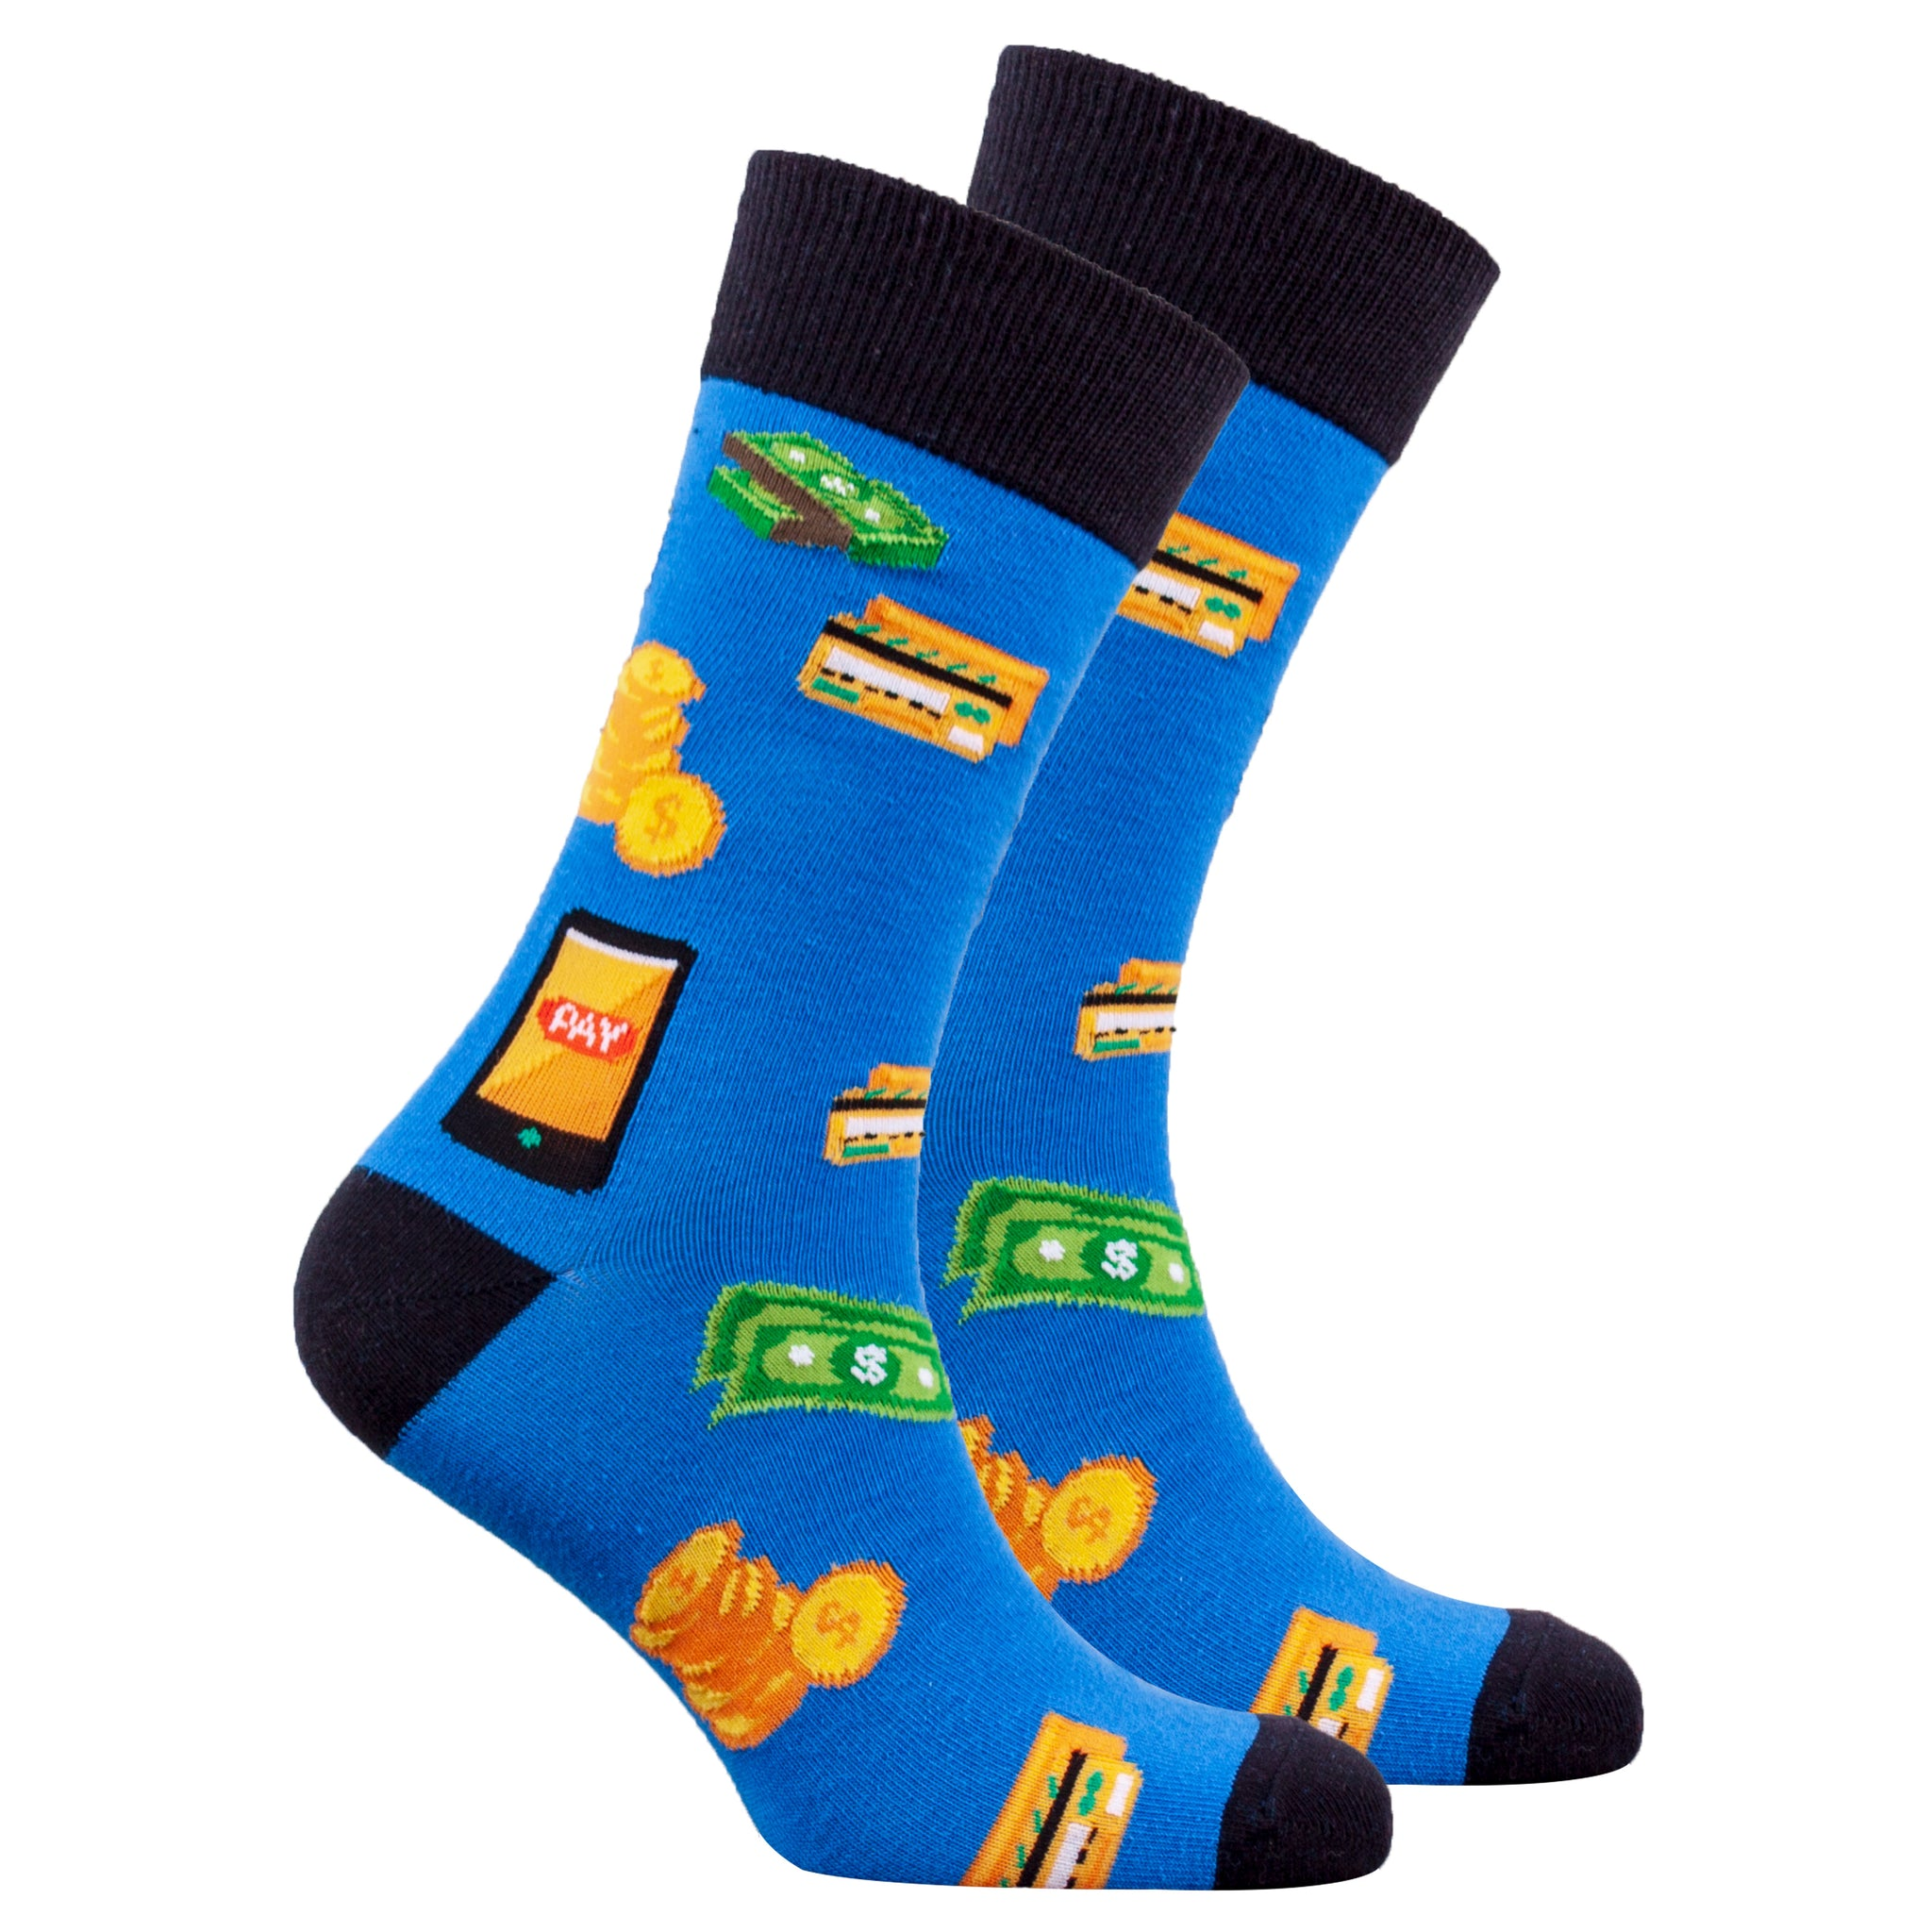 Men's Loose Change Socks